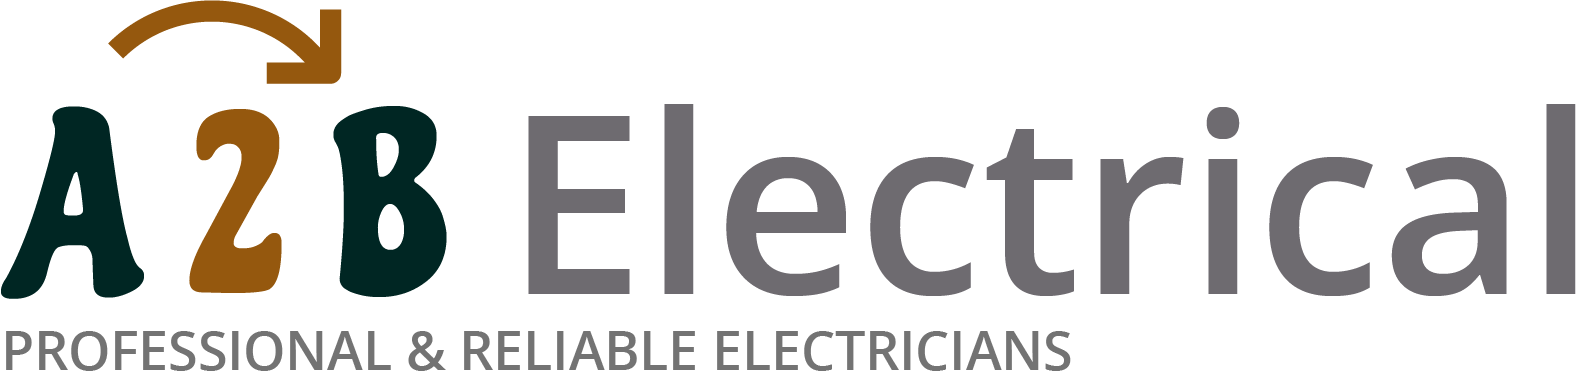 If you have electrical wiring problems in Hinckley, we can provide an electrician to have a look for you.